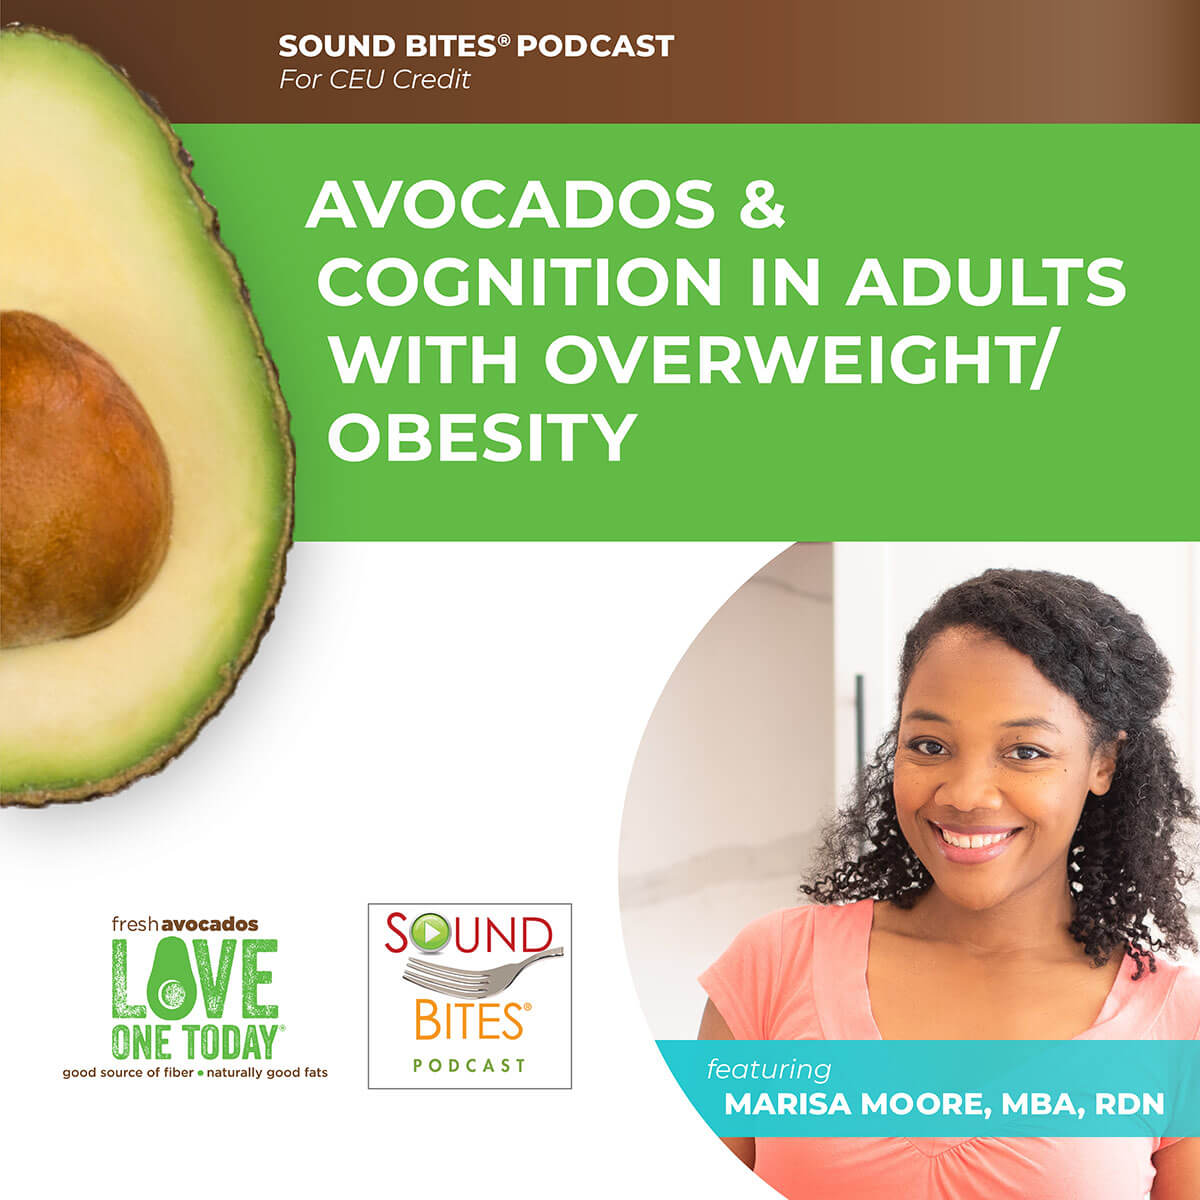 Avocados & Cognition in Adults with Overweight/Obesity with Marissa Moore, MBA, RDN